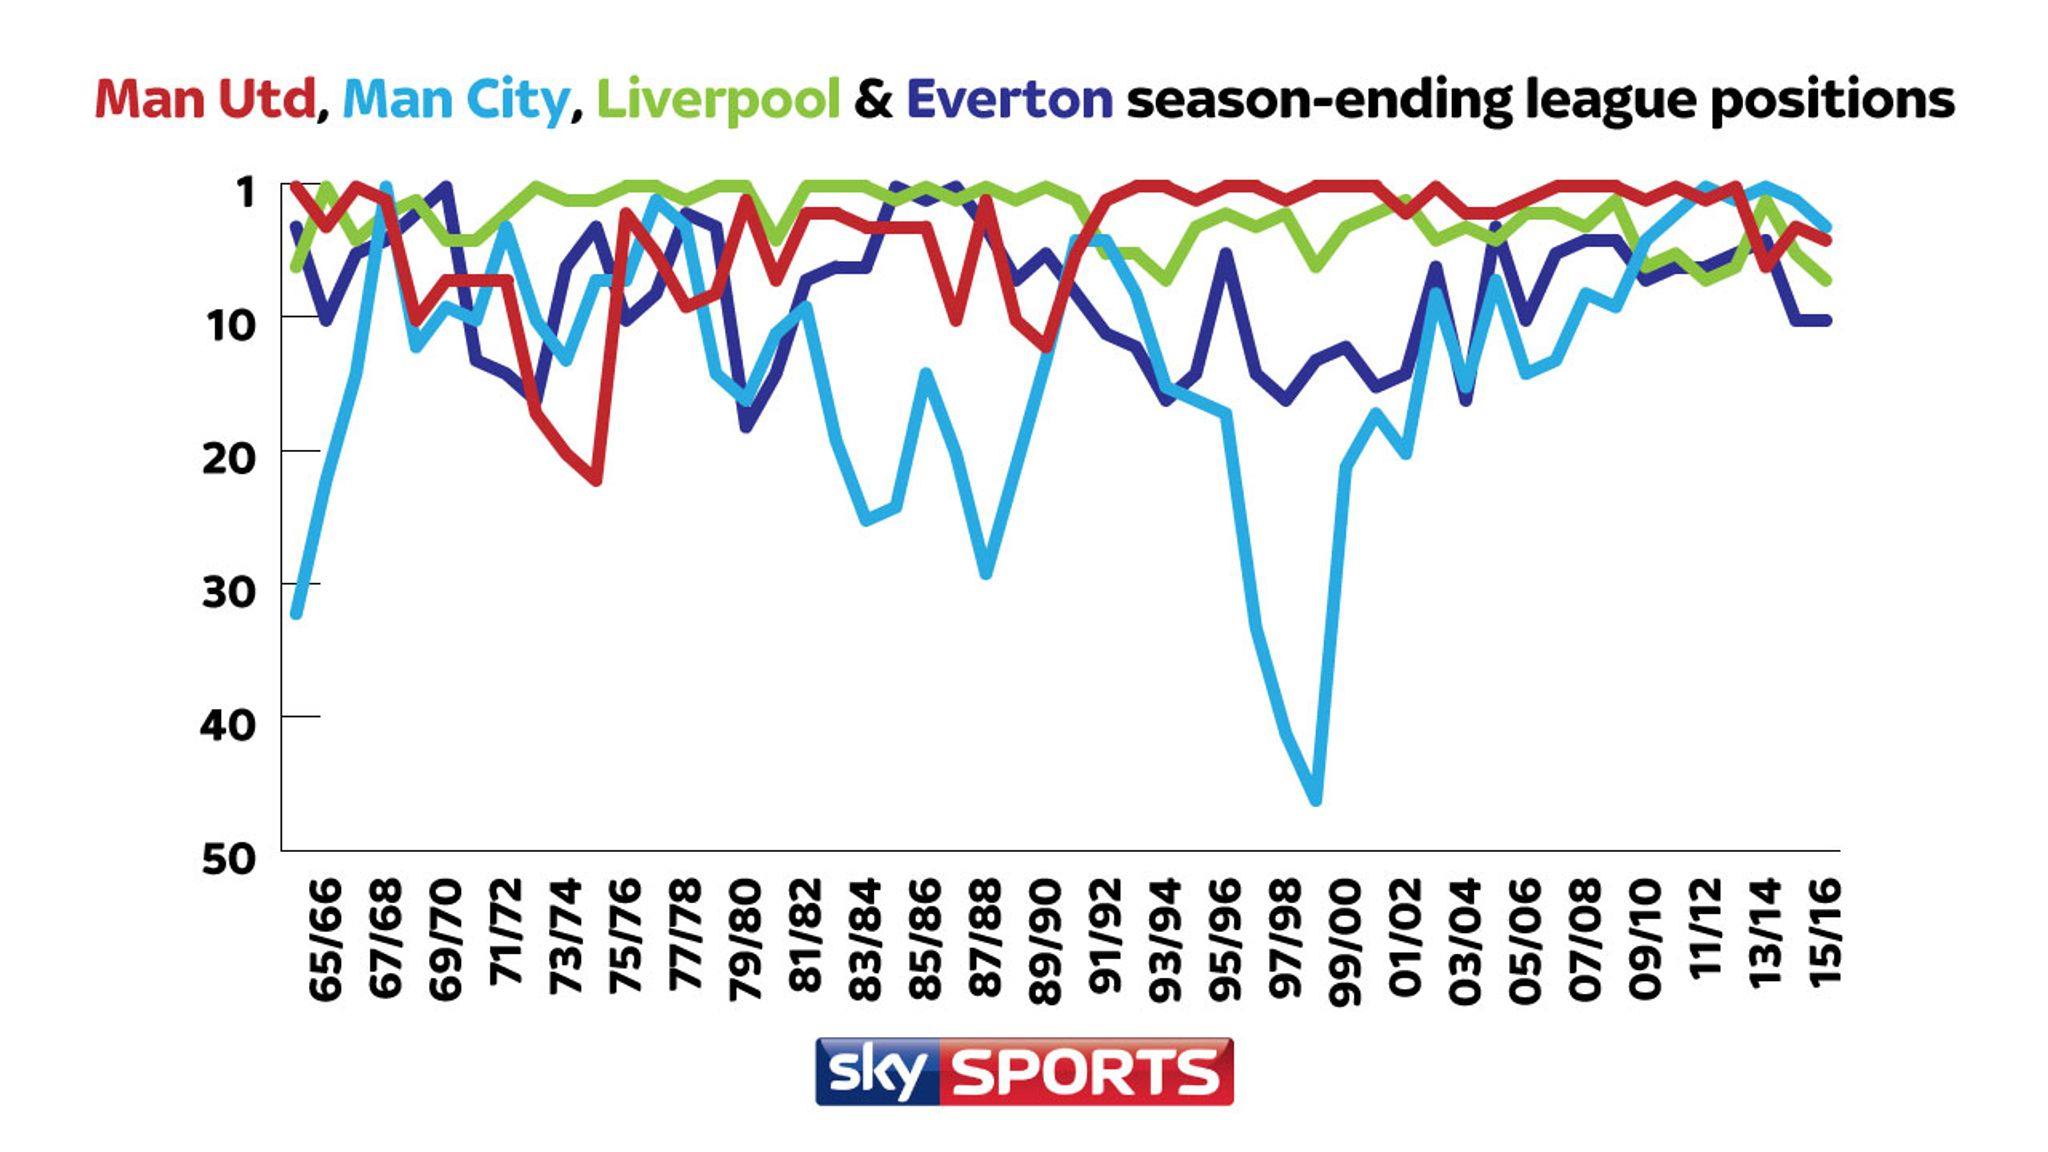 Are Liverpool and Everton bigger than Man Utd and Man City